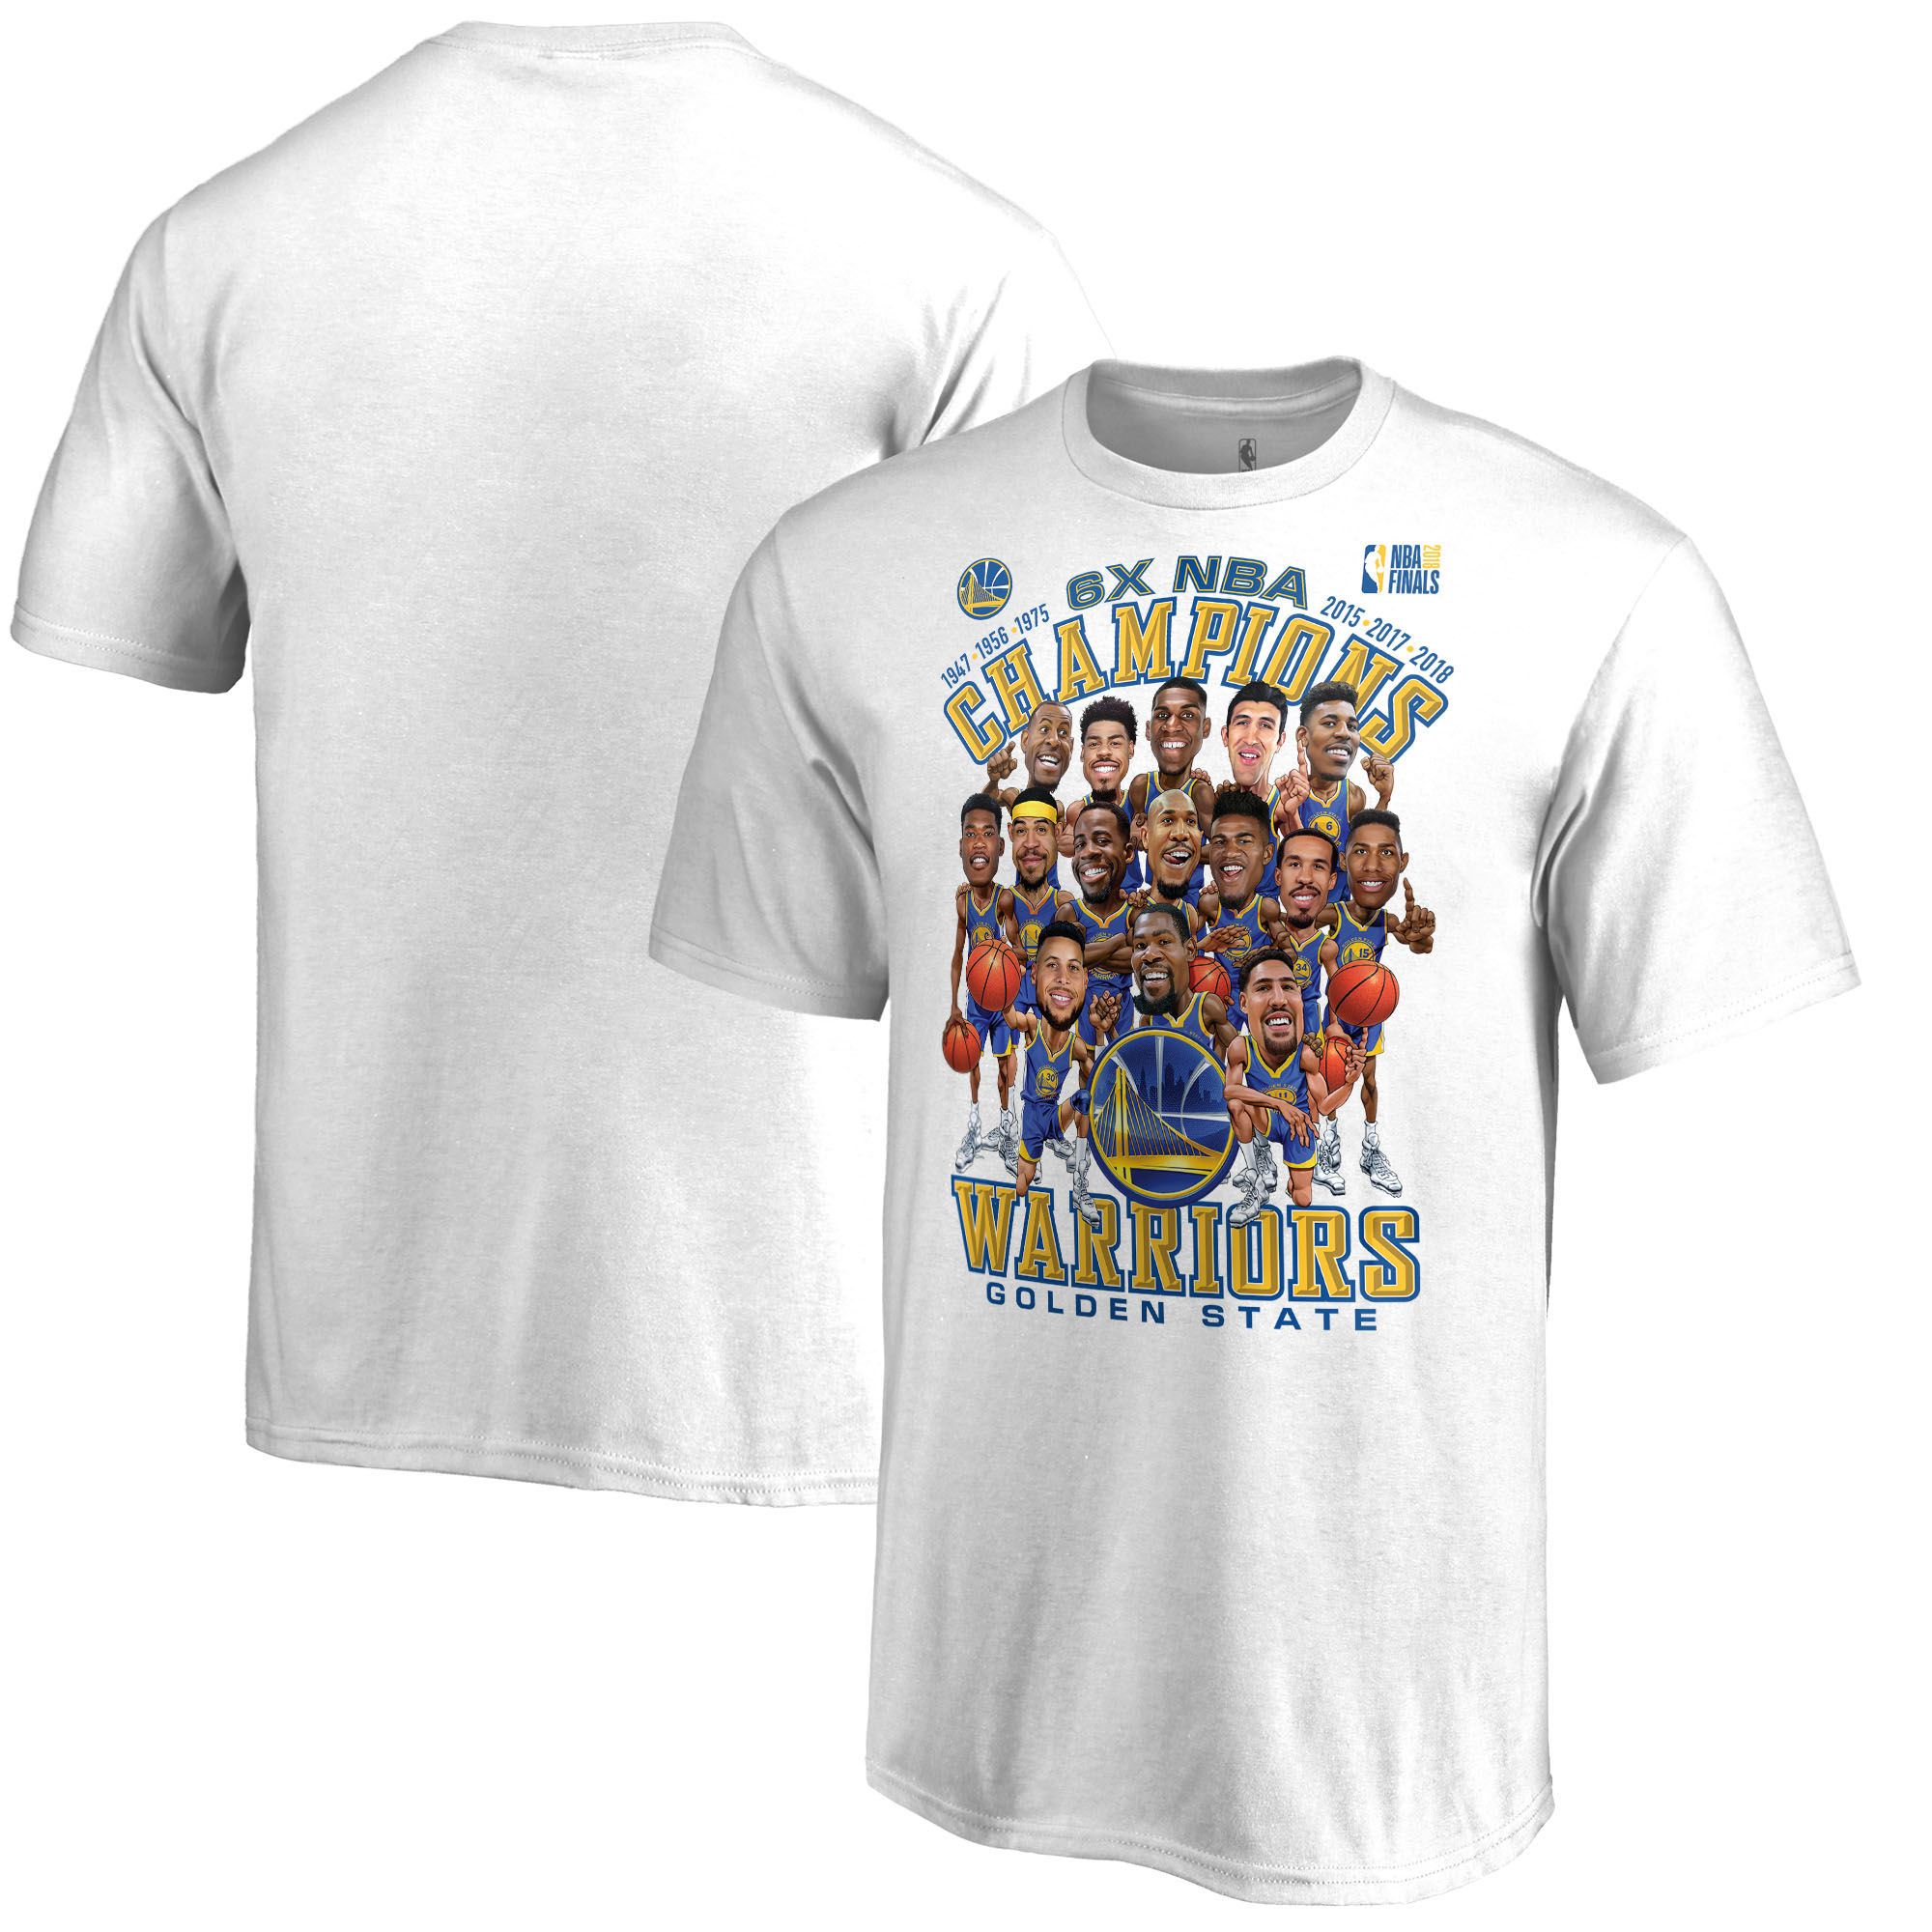 Golden State Warriors Fanatics Branded 2018 NBA Finals Champions Caricature T-Shirt White